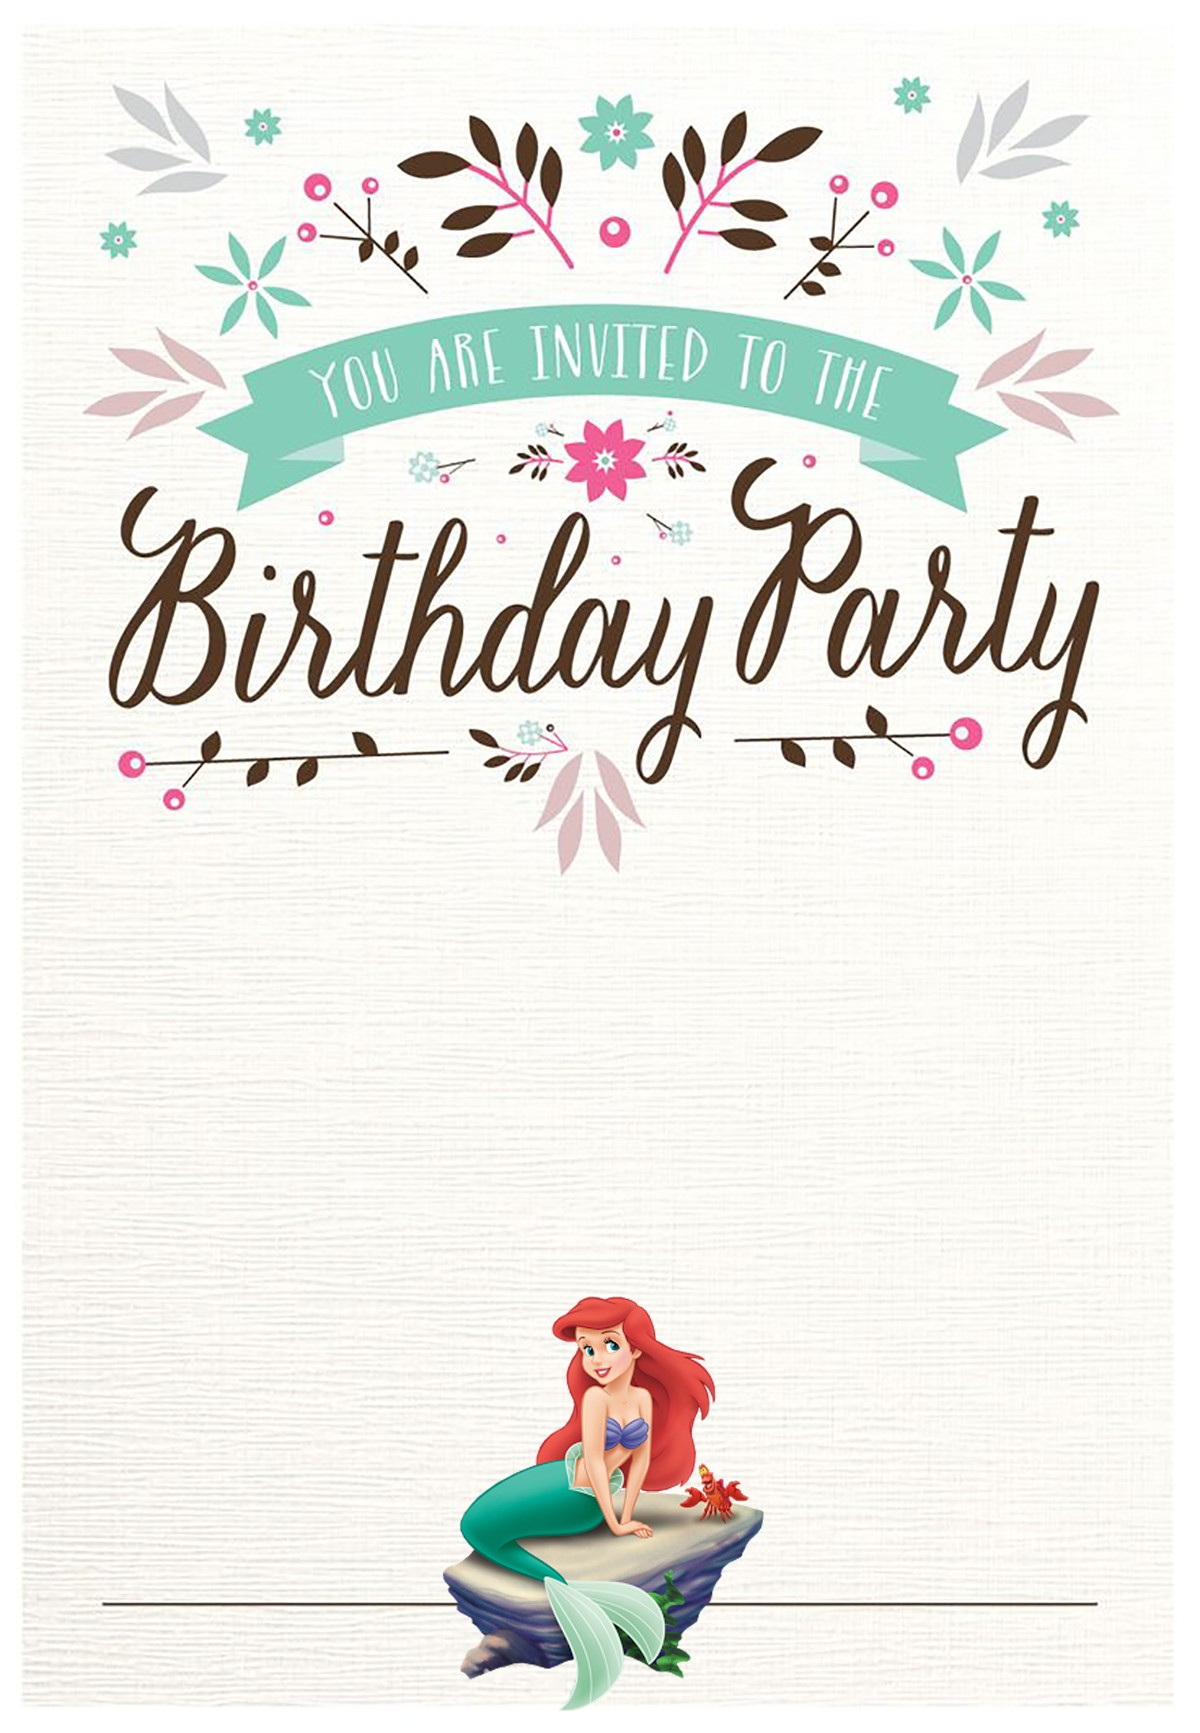 Little Mermaid Free Printable Invitation Templates - Little mermaid birthday invitation template